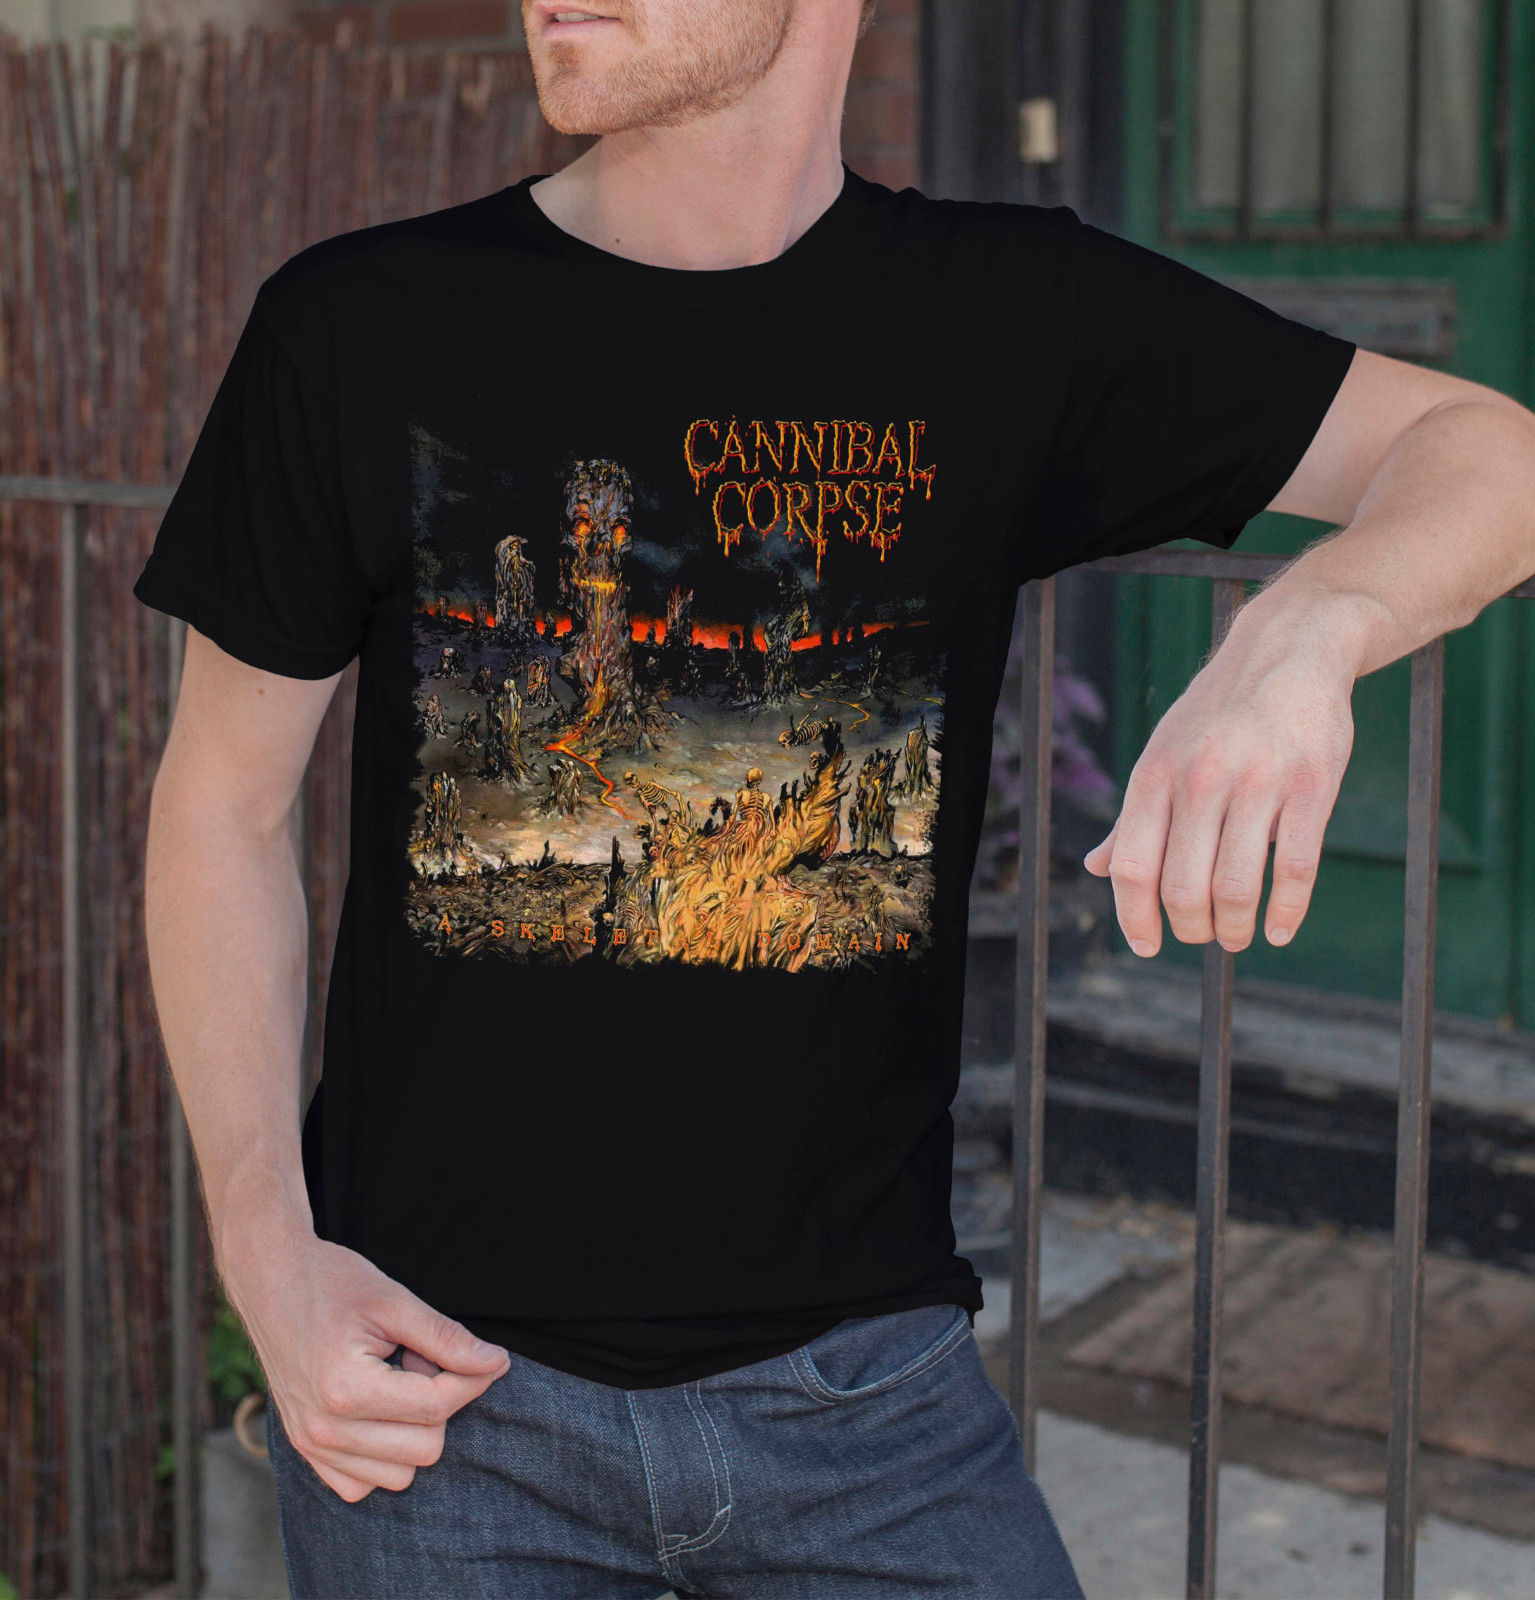 CANNIBAL CORPSE A Skeletal Domain Men Black T-Shirt Death Metal Band Tee Shirt Cool Funny T-Shirt Men High Quality Tees